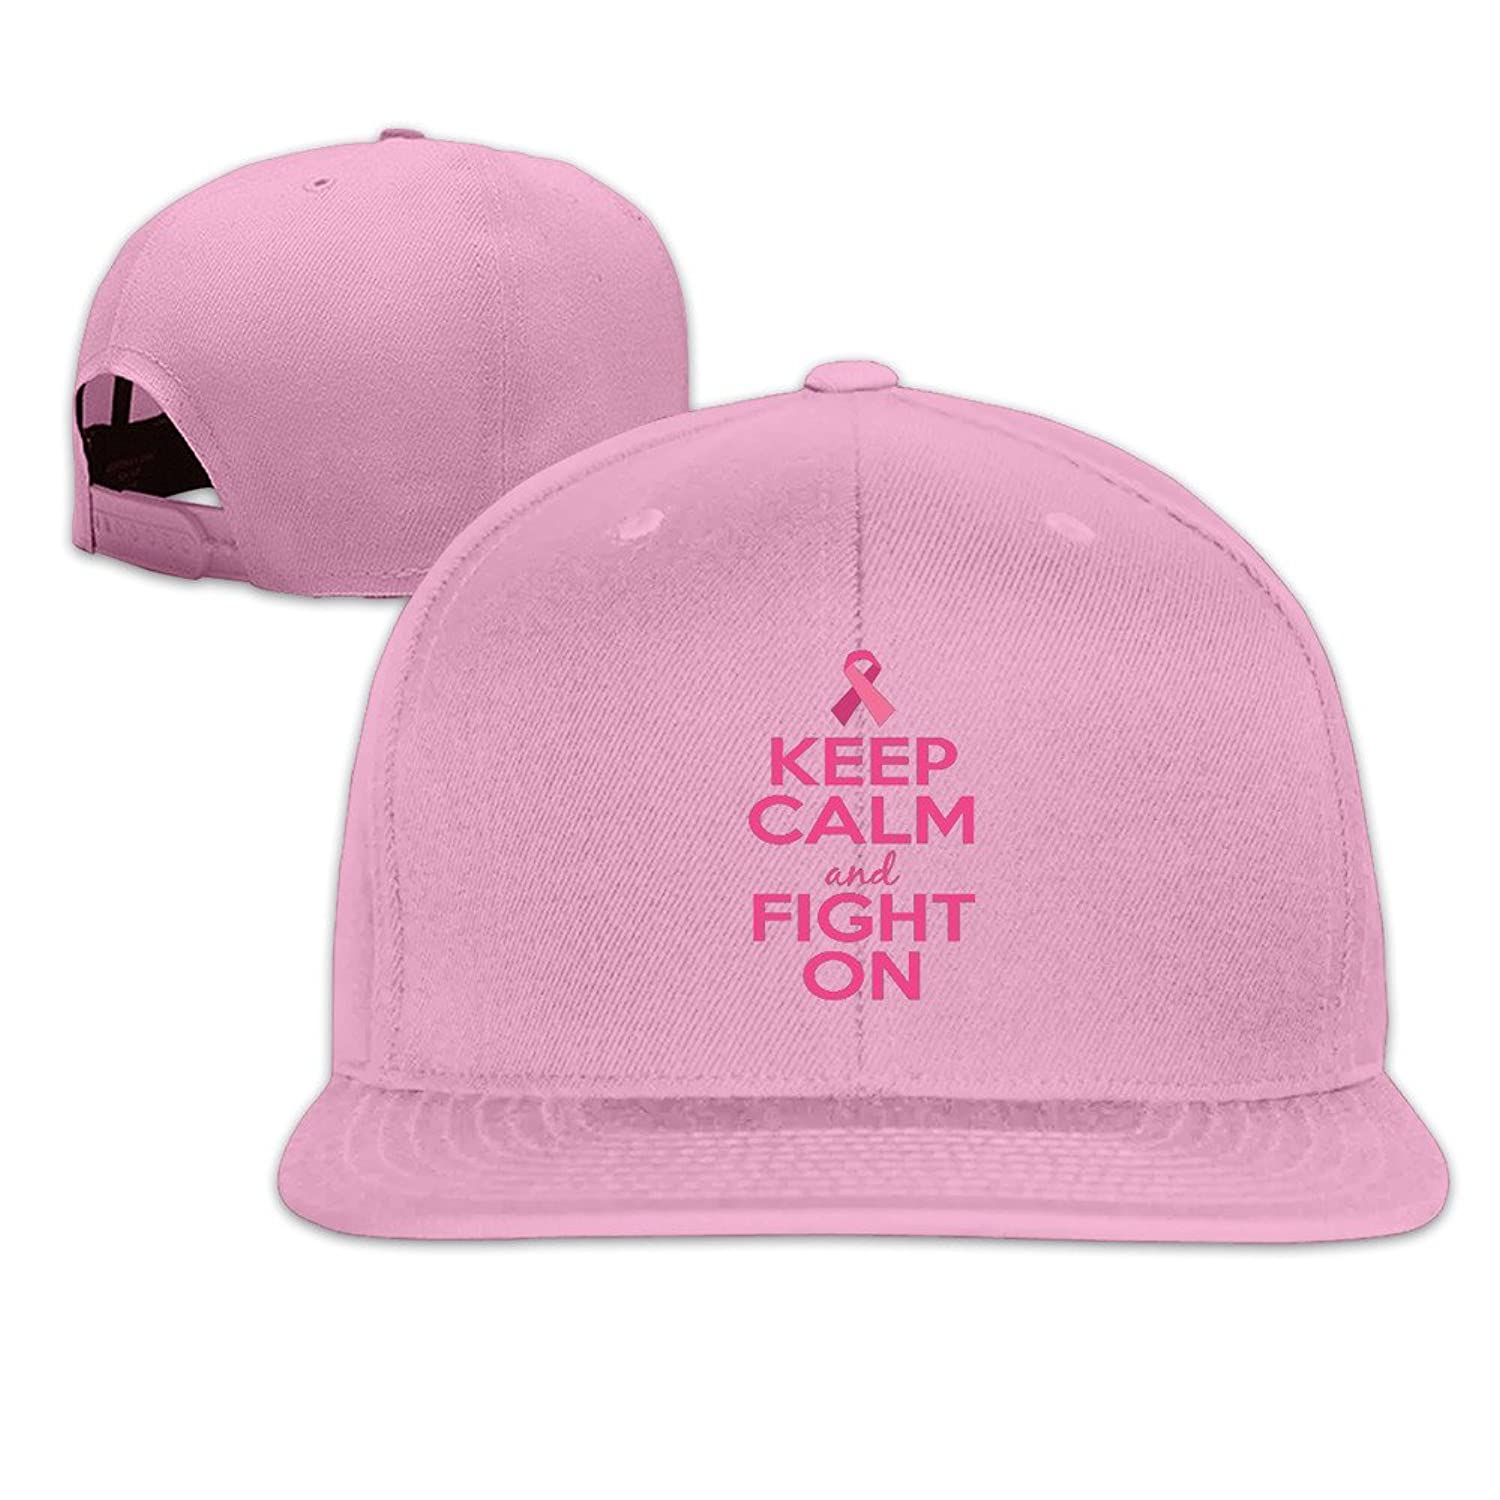 Keep Calm And Fight On Adjustable Cap Flat Bill Baseball Cap